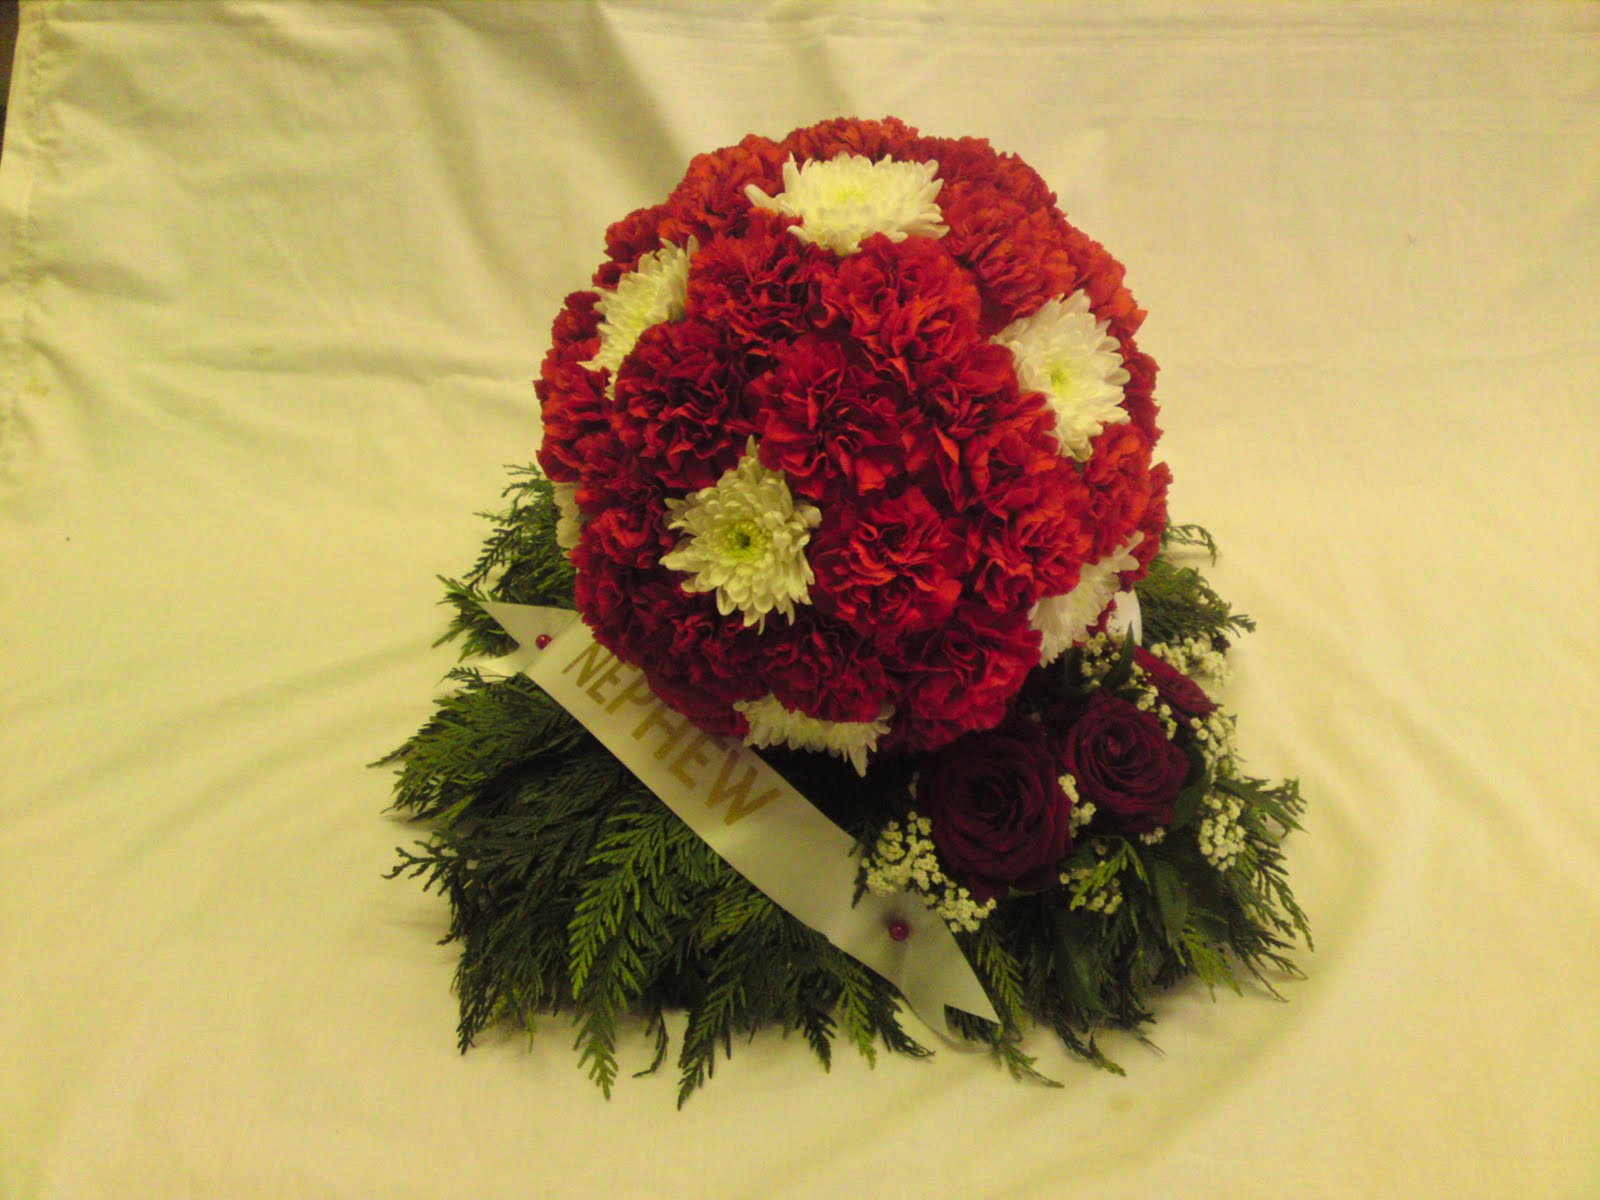 Rjs florist funeral football tributes another tribute in ctiys colours and a new design out was a scarf designed in lincoln citys red and white stripes red carnations and white chrysants izmirmasajfo